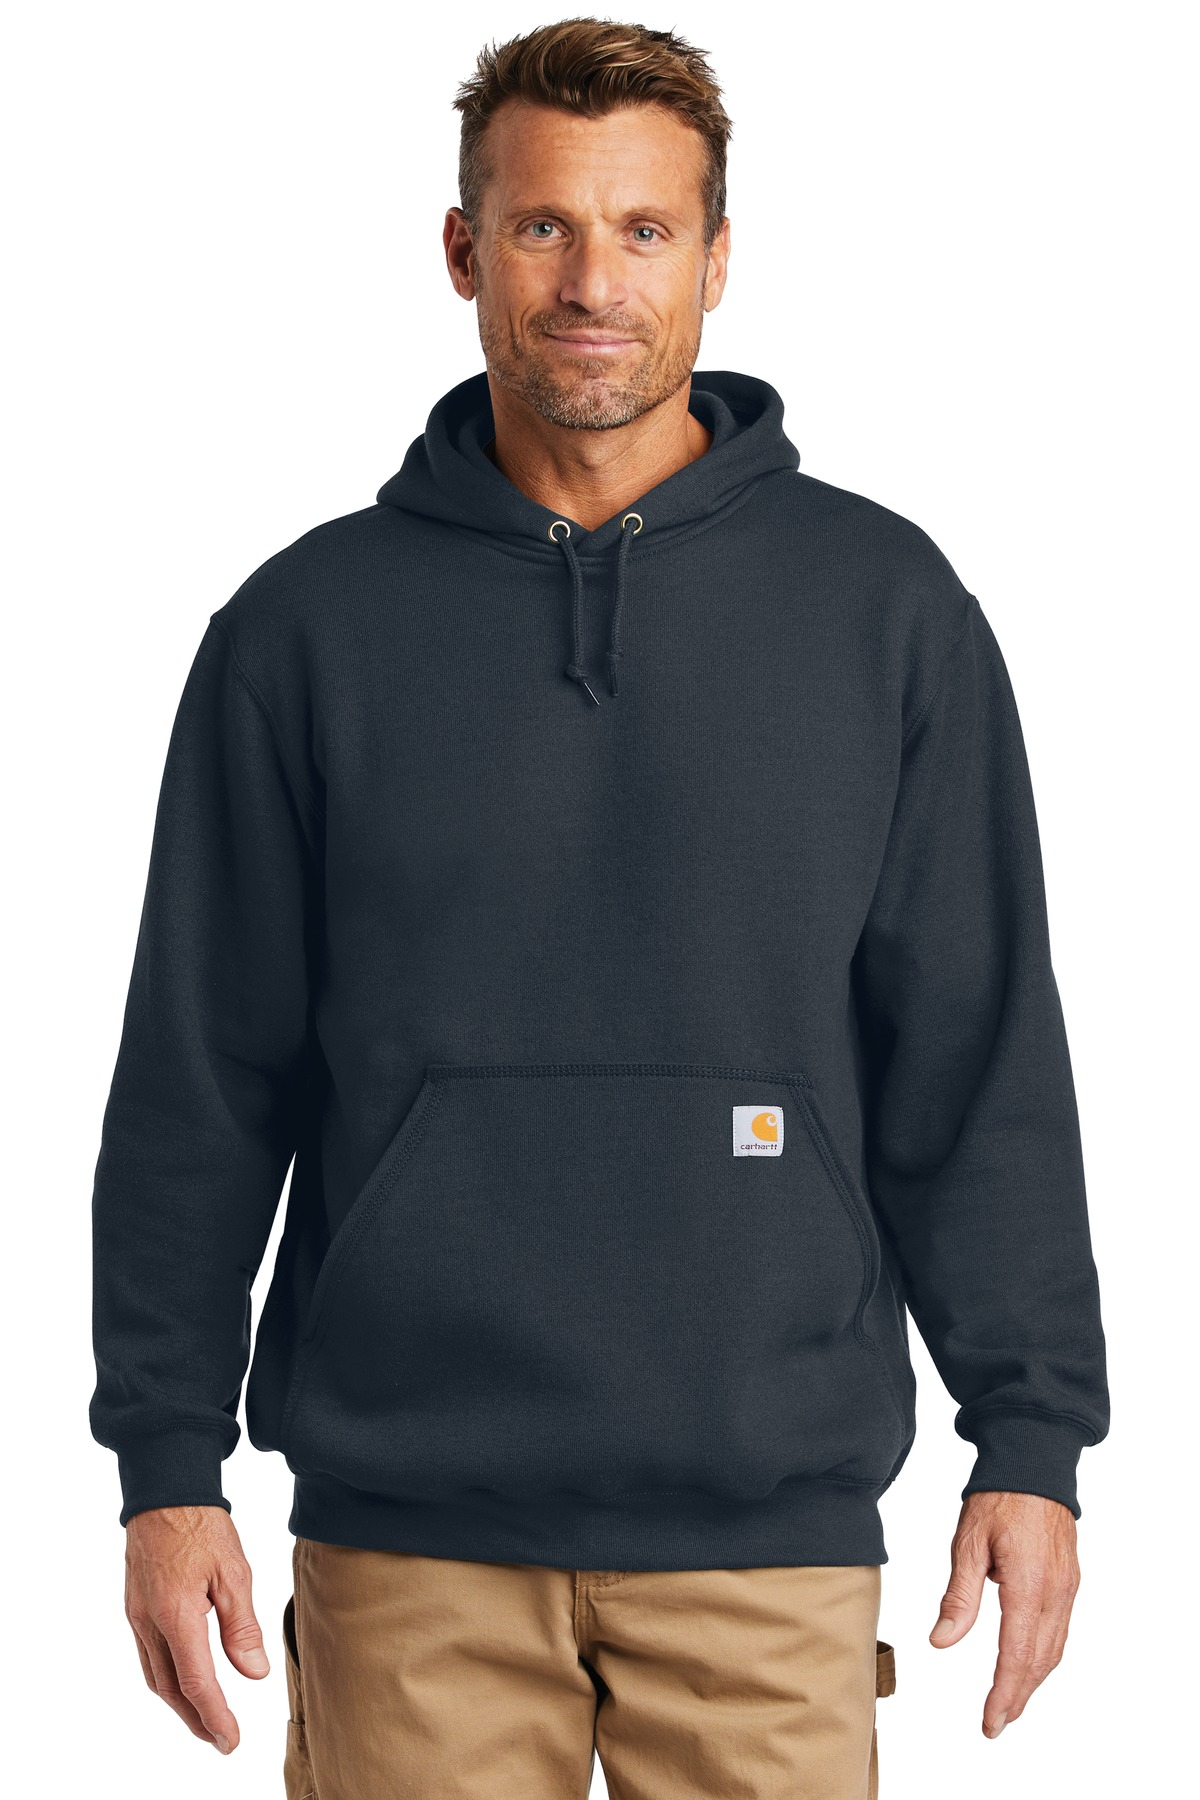 Carhartt  ®  Midweight Hooded Sweatshirt. CTK121 - New Navy